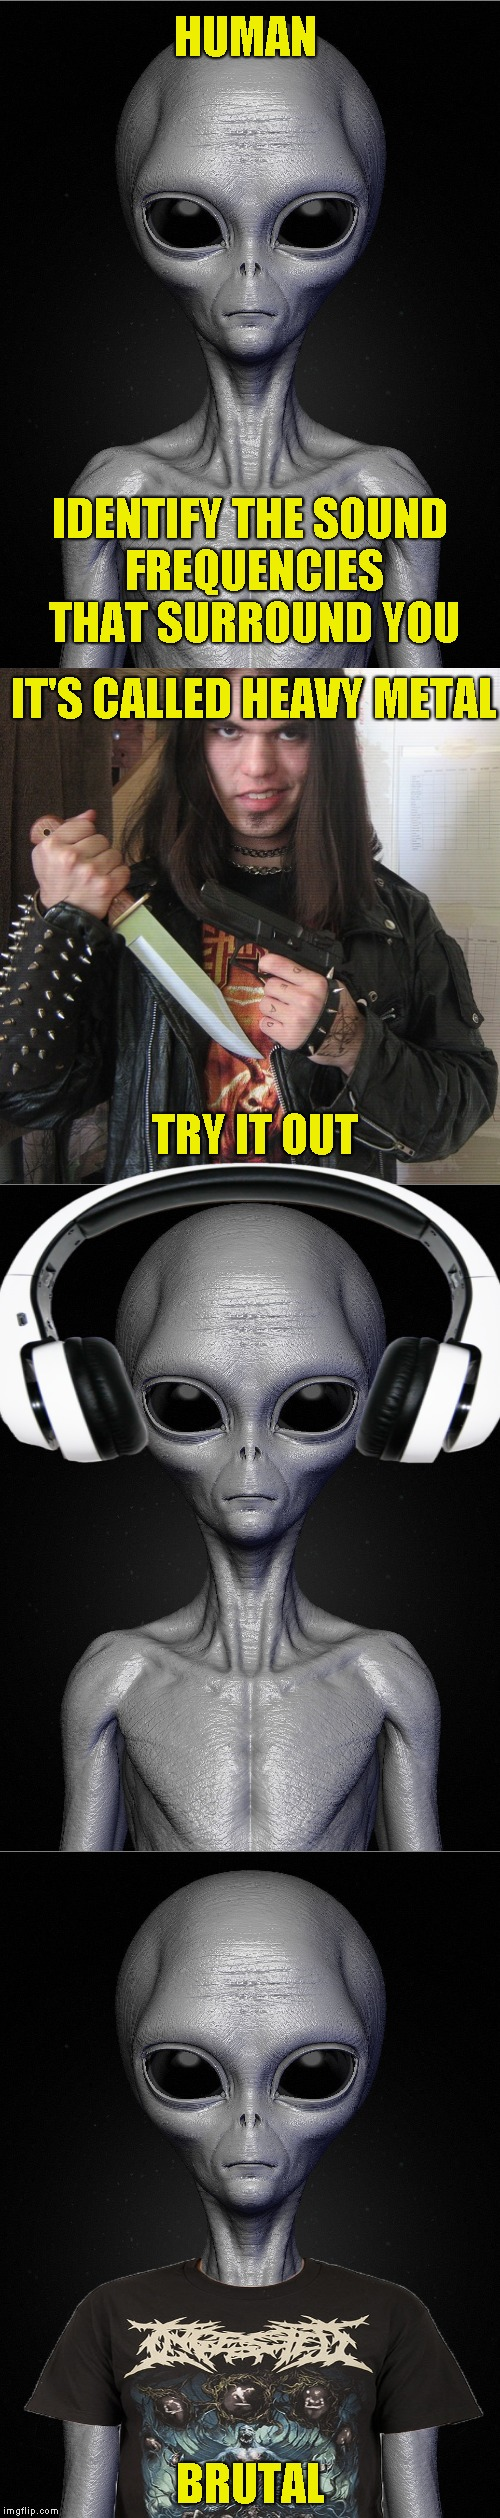 I bet that aliens love listening to Black Sabbath in their mothership. Aliens week, an Aliens and clinkster event. 6/12 - 6/19 | HUMAN BRUTAL IDENTIFY THE SOUND FREQUENCIES THAT SURROUND YOU IT'S CALLED HEAVY METAL TRY IT OUT | image tagged in memes,aliens week,powermetalhead,heavy metal,brutal,funny | made w/ Imgflip meme maker